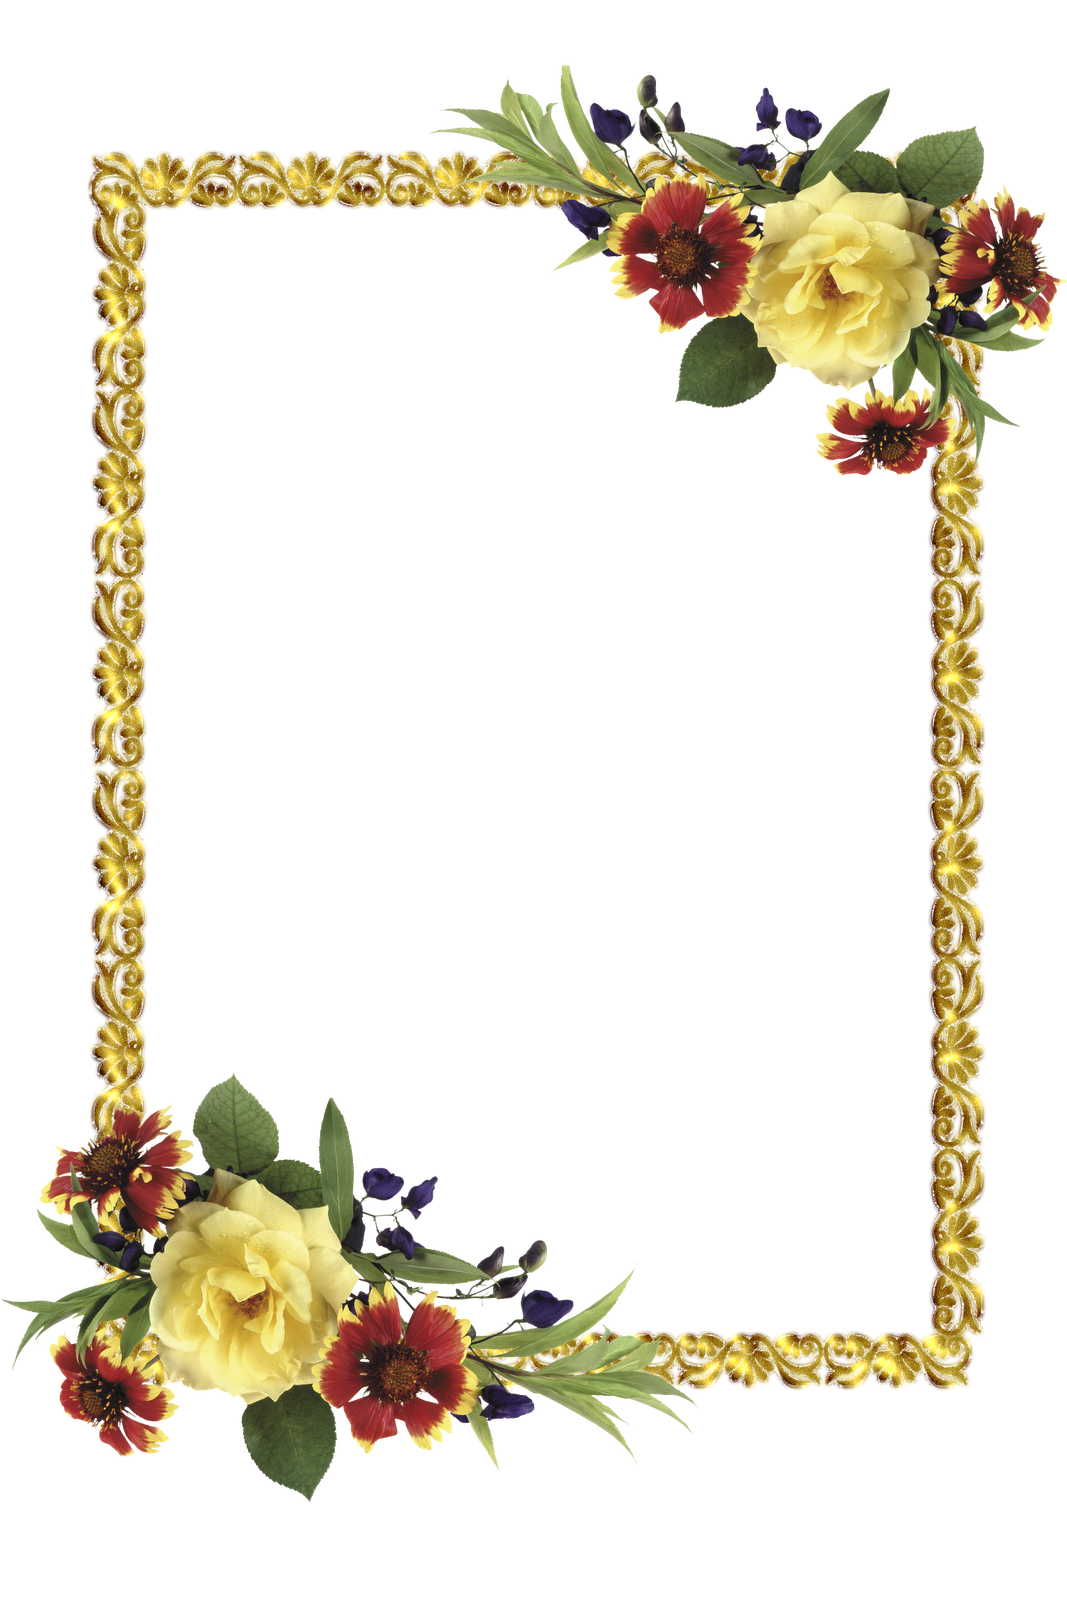 Free snowflake clipart hoto image transparent stock frame png   Frames PNG oval com flores-Central Photoshop   Рамочки ... image transparent stock